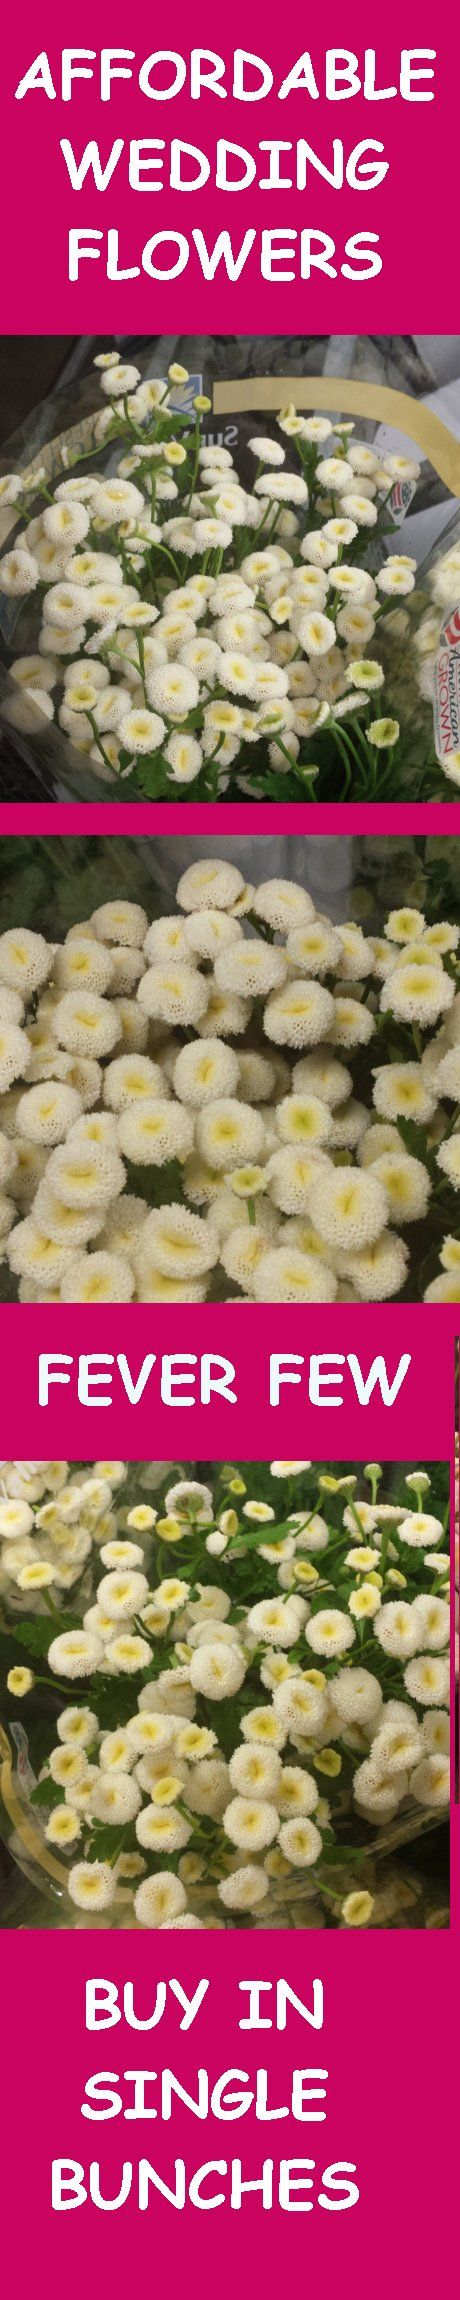 wholesale wedding flowers easy step by step free flower tutorials learn how to make bridal